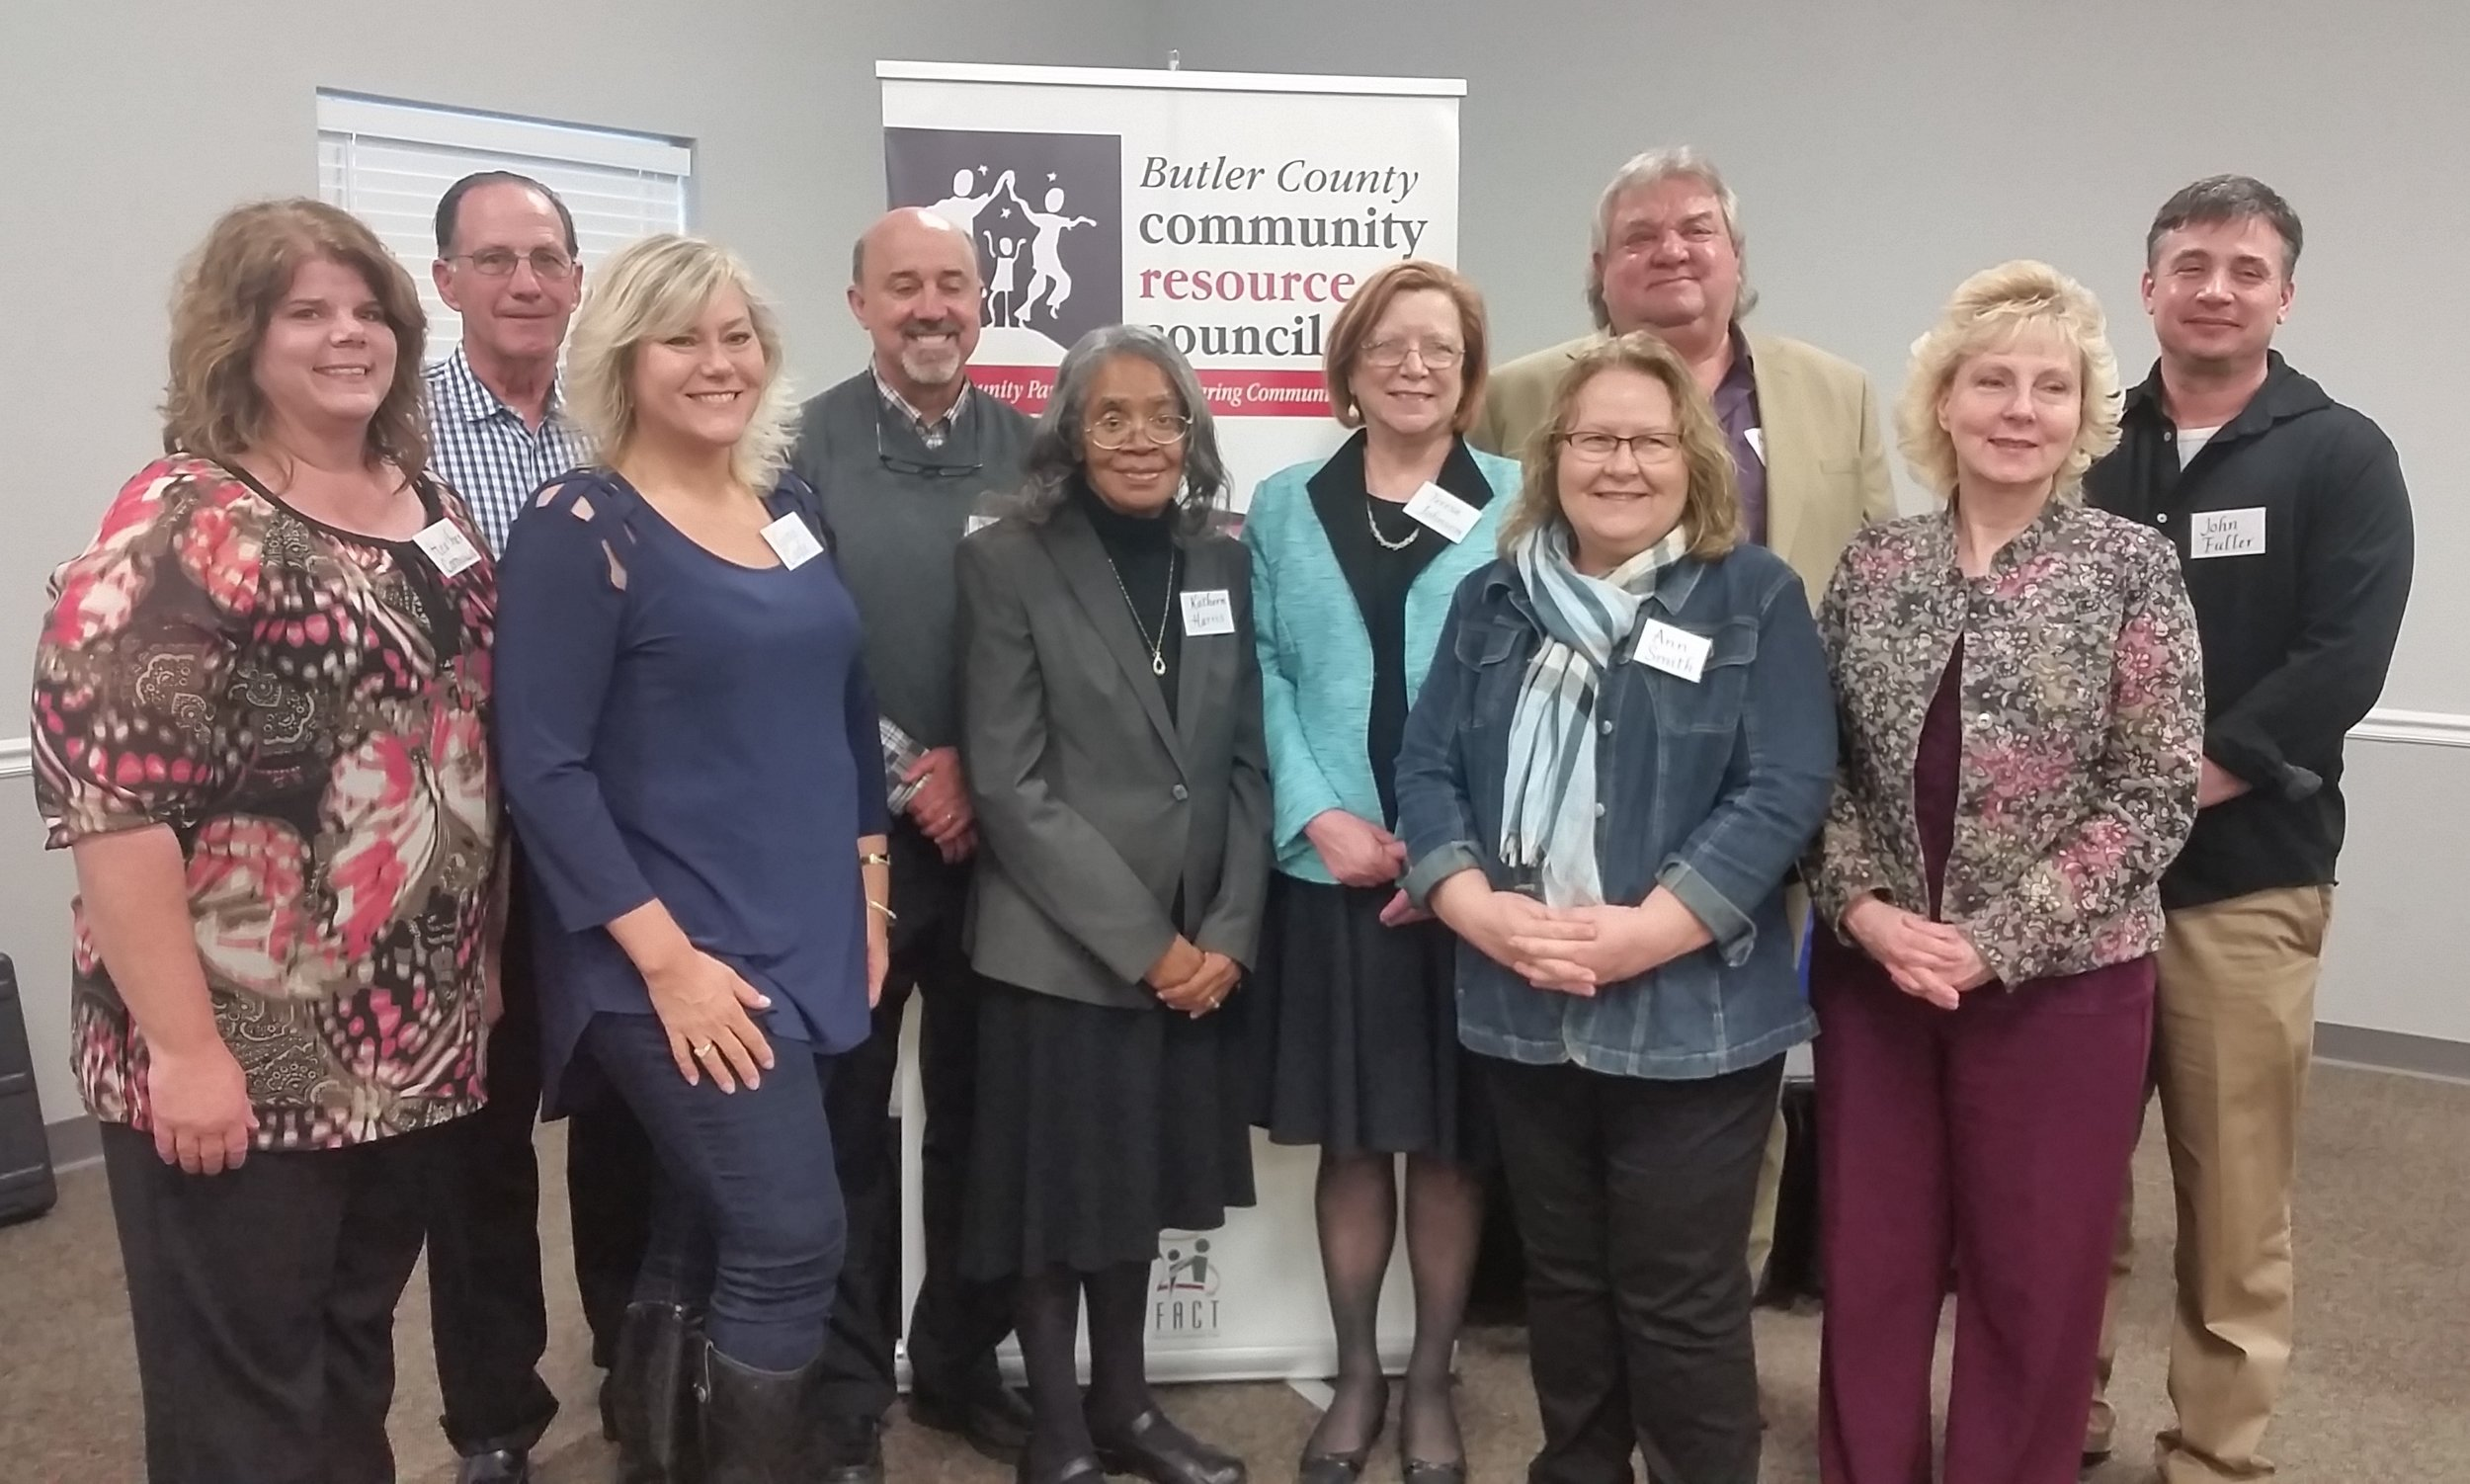 Heather Cornman, Lonnie Taylor, Treasurer, Gina Cagle, Byron Beck, Vice-President, Kathern Harris, Teresa Johnson, President, Ann Smith, Secretary, Austin Montague, Diana Duff and John Fuller. Not pictured, Jeff Rolland, Dr. Cynthia Brown and Ed DeGaris.